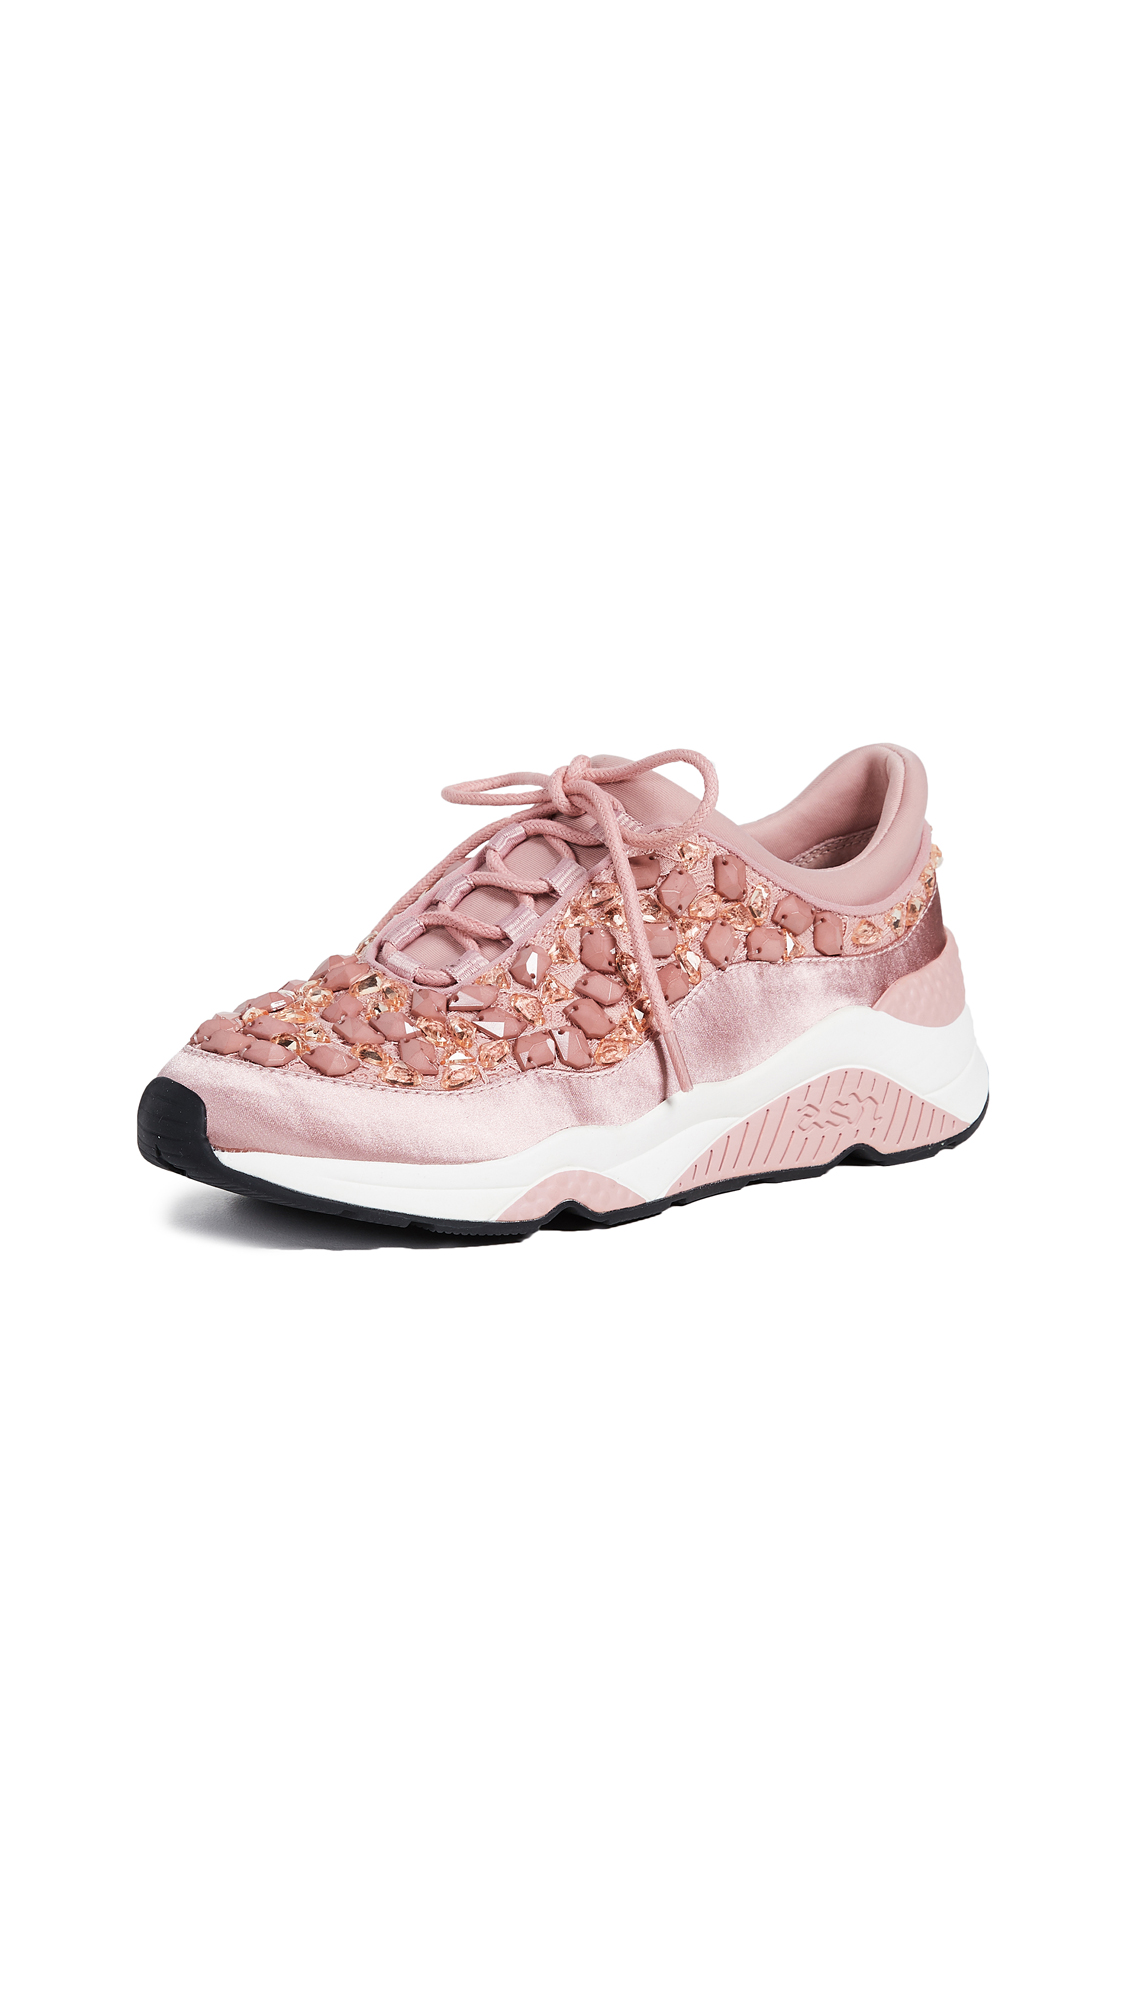 Ash Muse Stones Sneakers - Blush